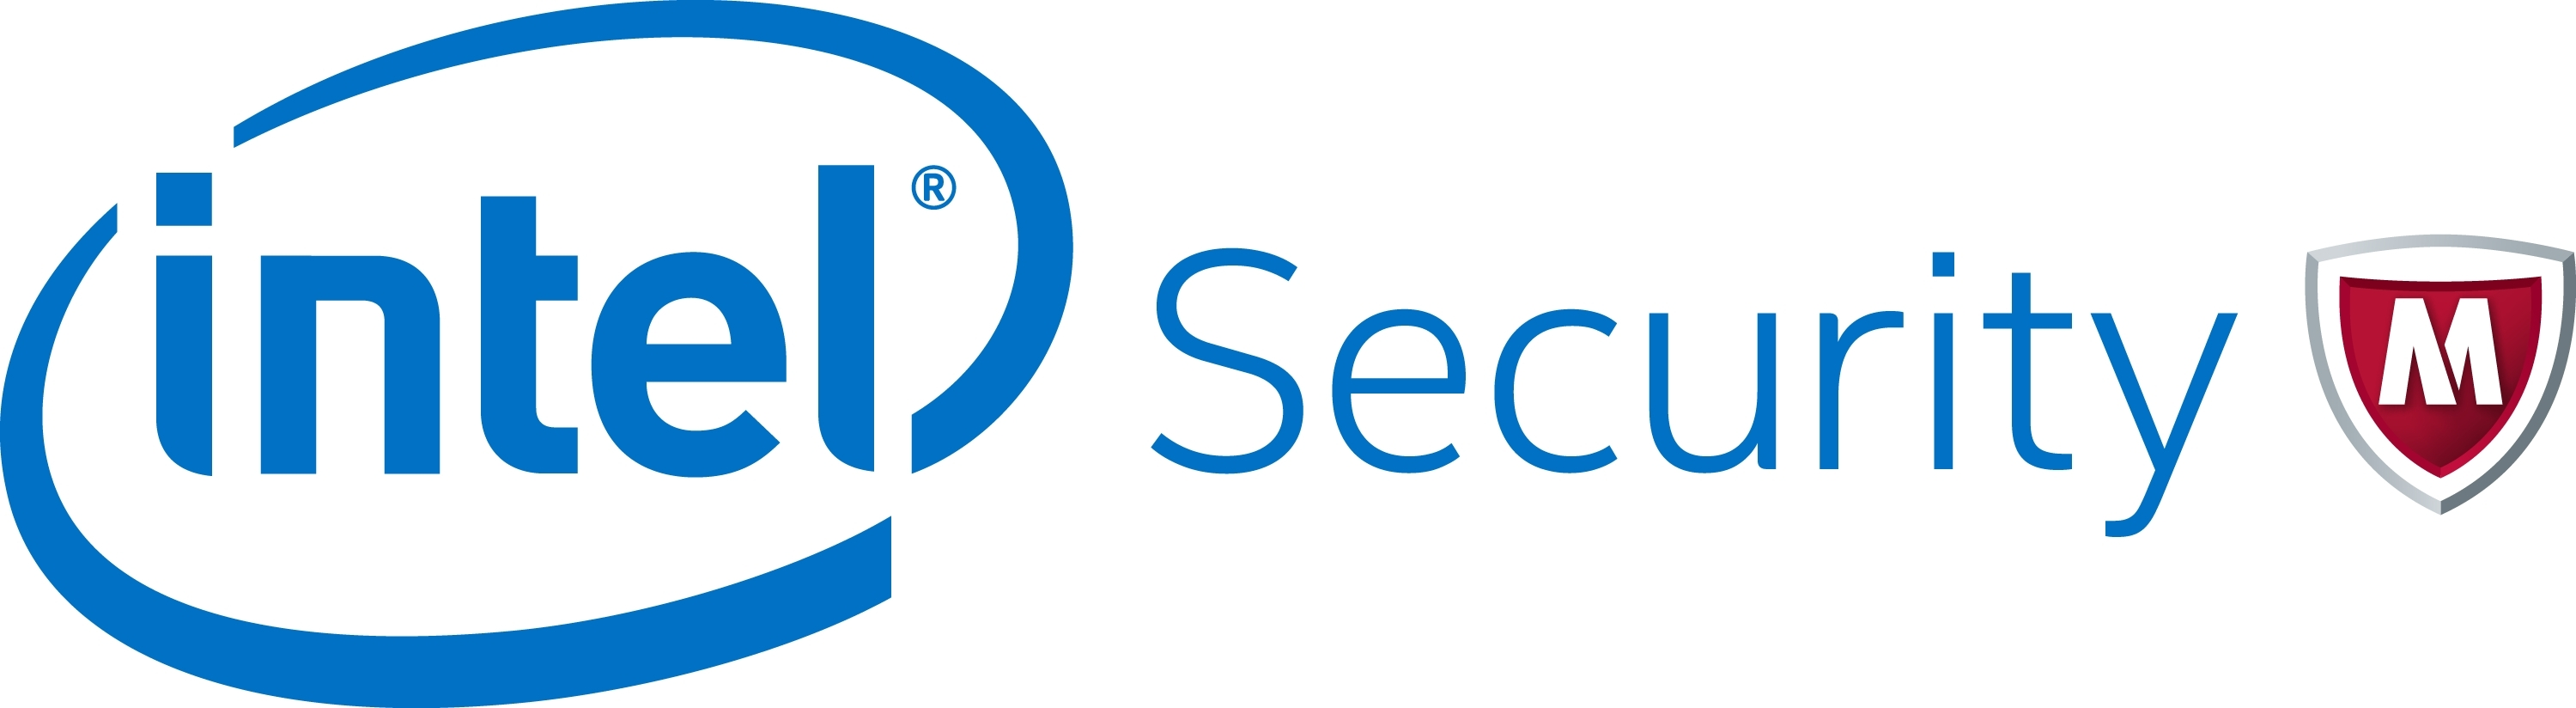 Intel Security and Discovery Education Launch First Digital Safety ...